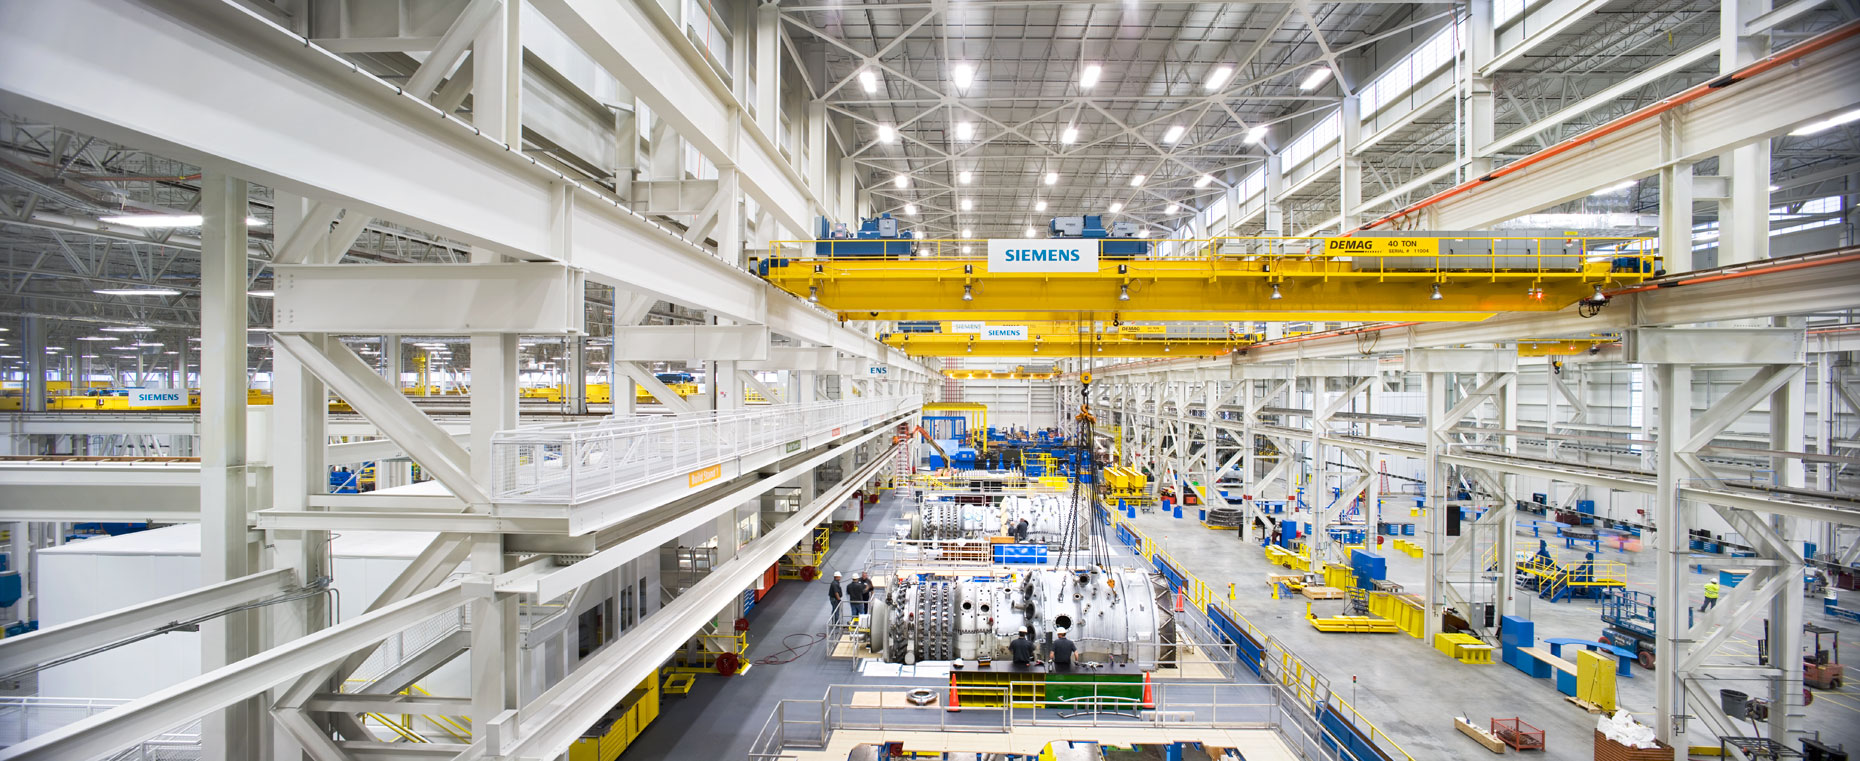 Panoramic view of Siemens Gas Turbine Manufacturing facility